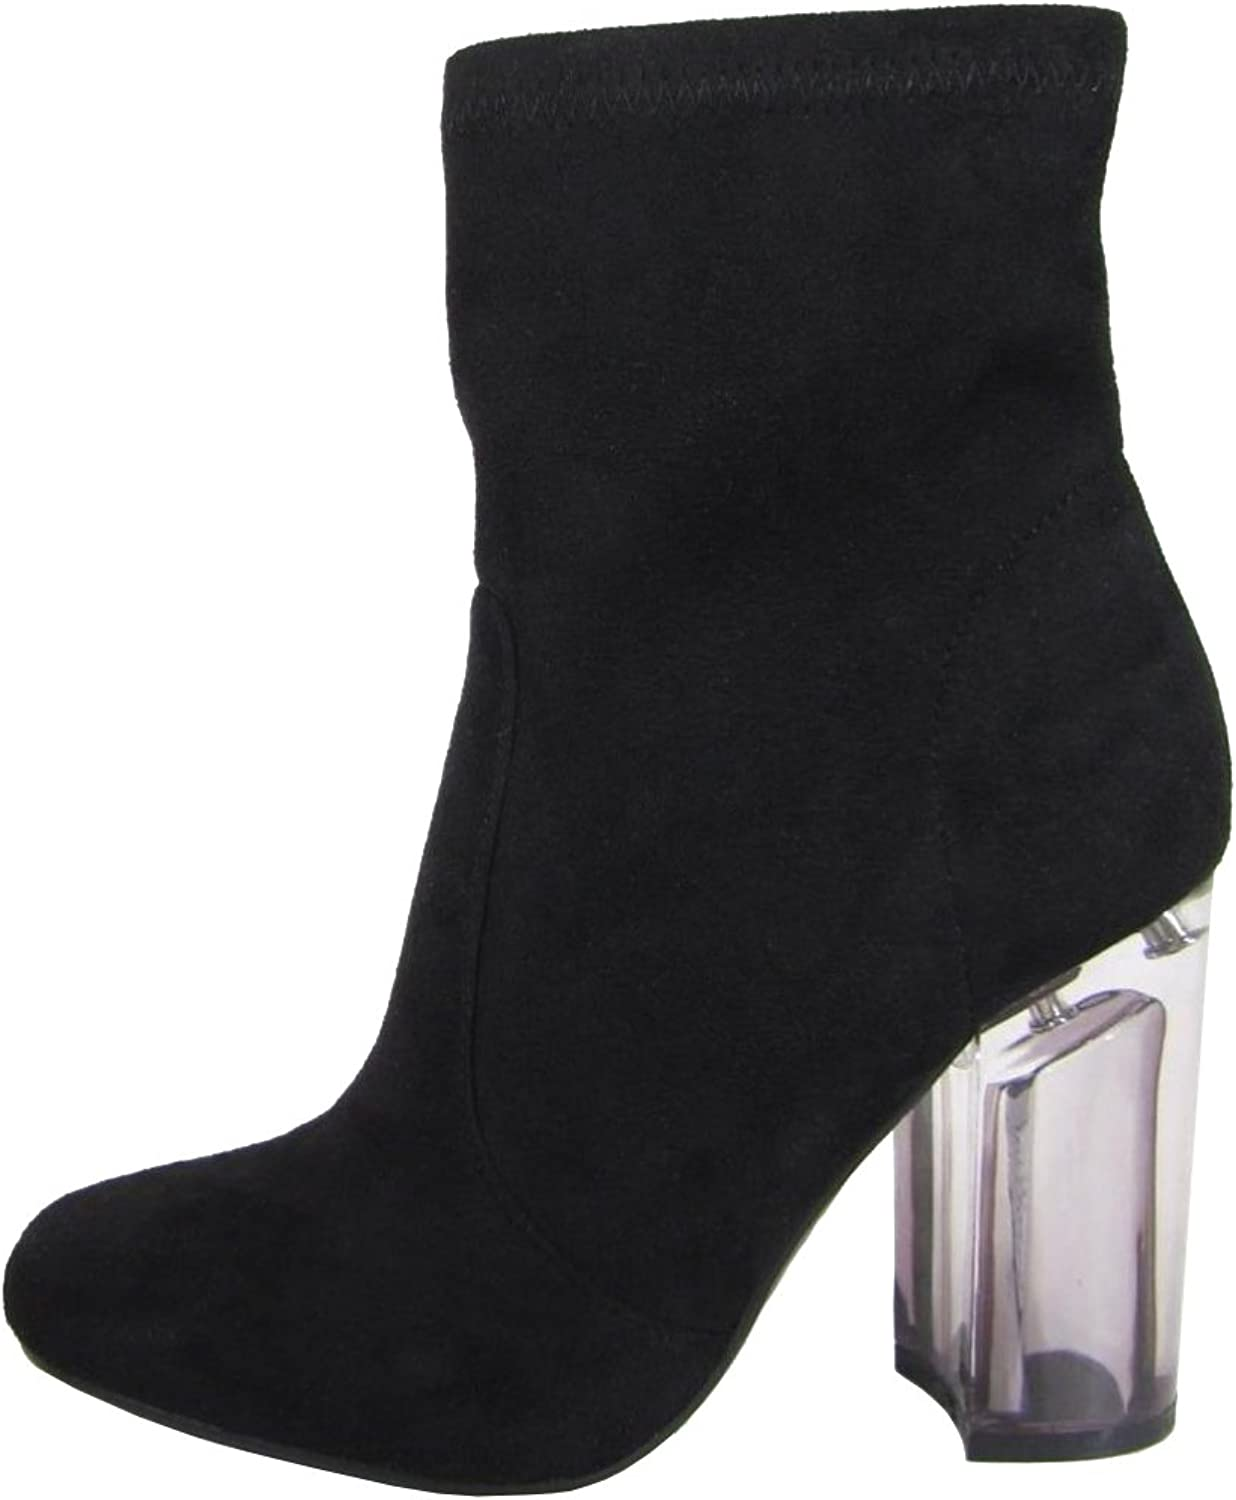 Speed Limit 98 Women's Closed Toe Faux Suede Chunky Clear Perspex Heel Ankle Bootie, Clay, 10 M US